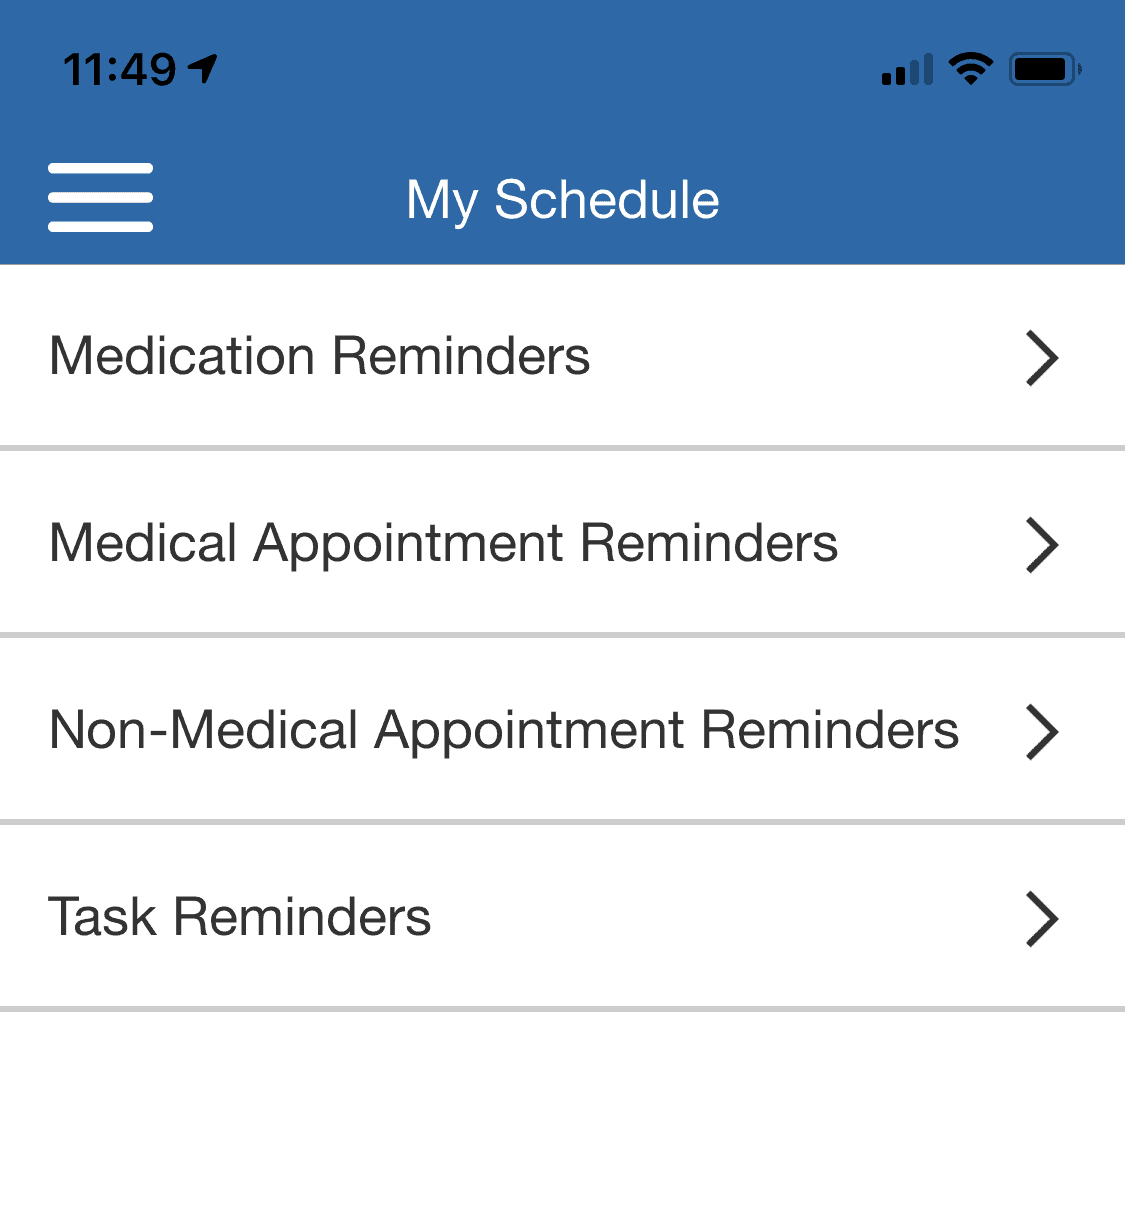 View your schedule in the WellBe app